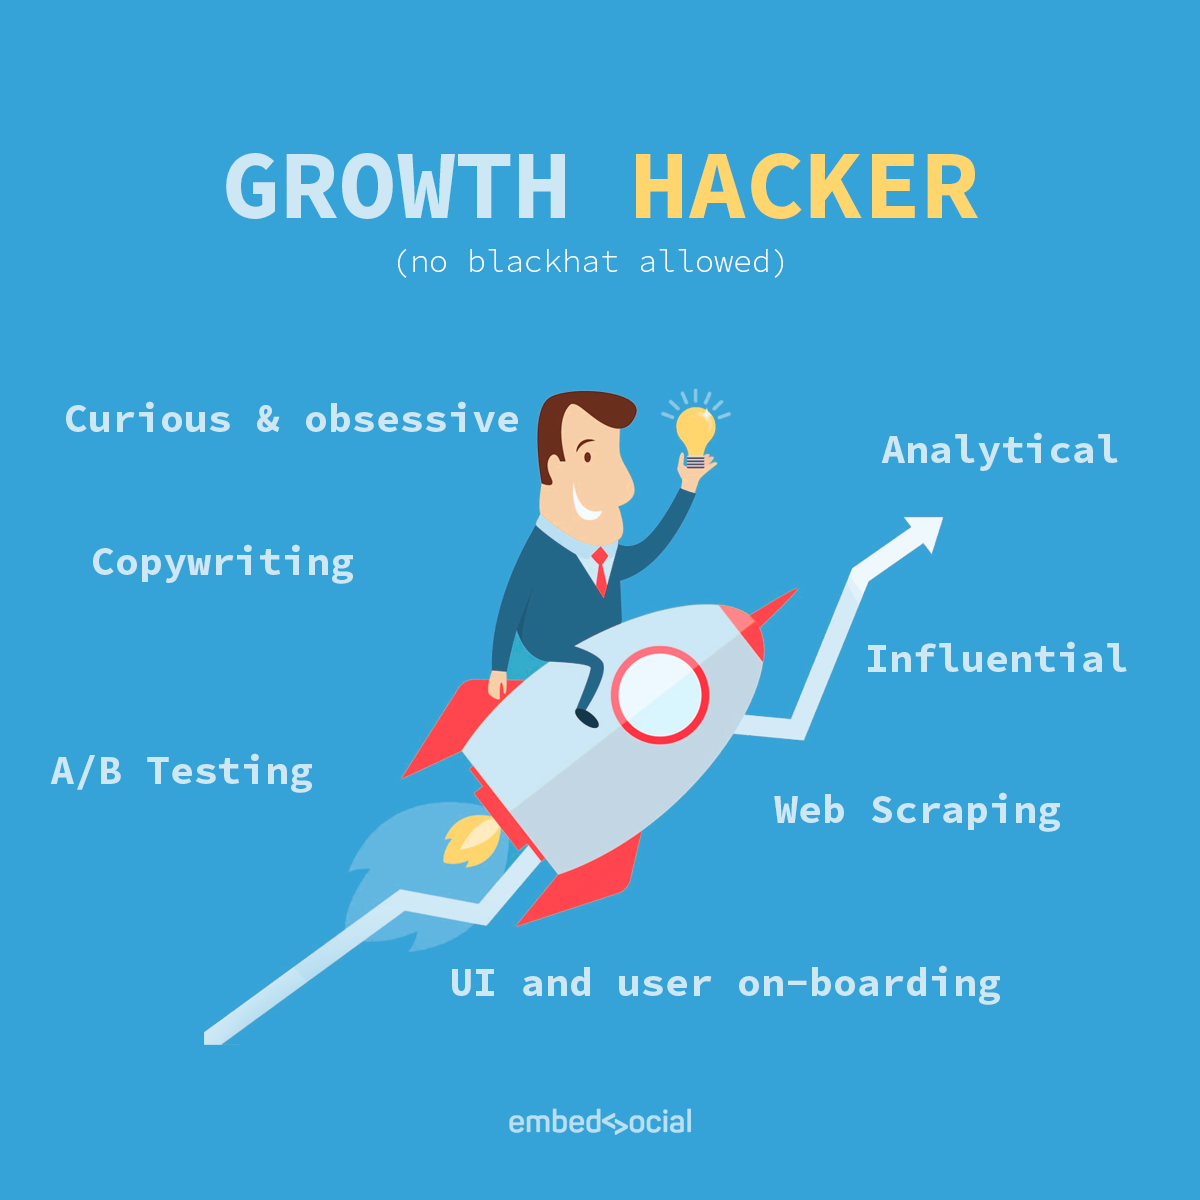 How to Find a Growth Hacker